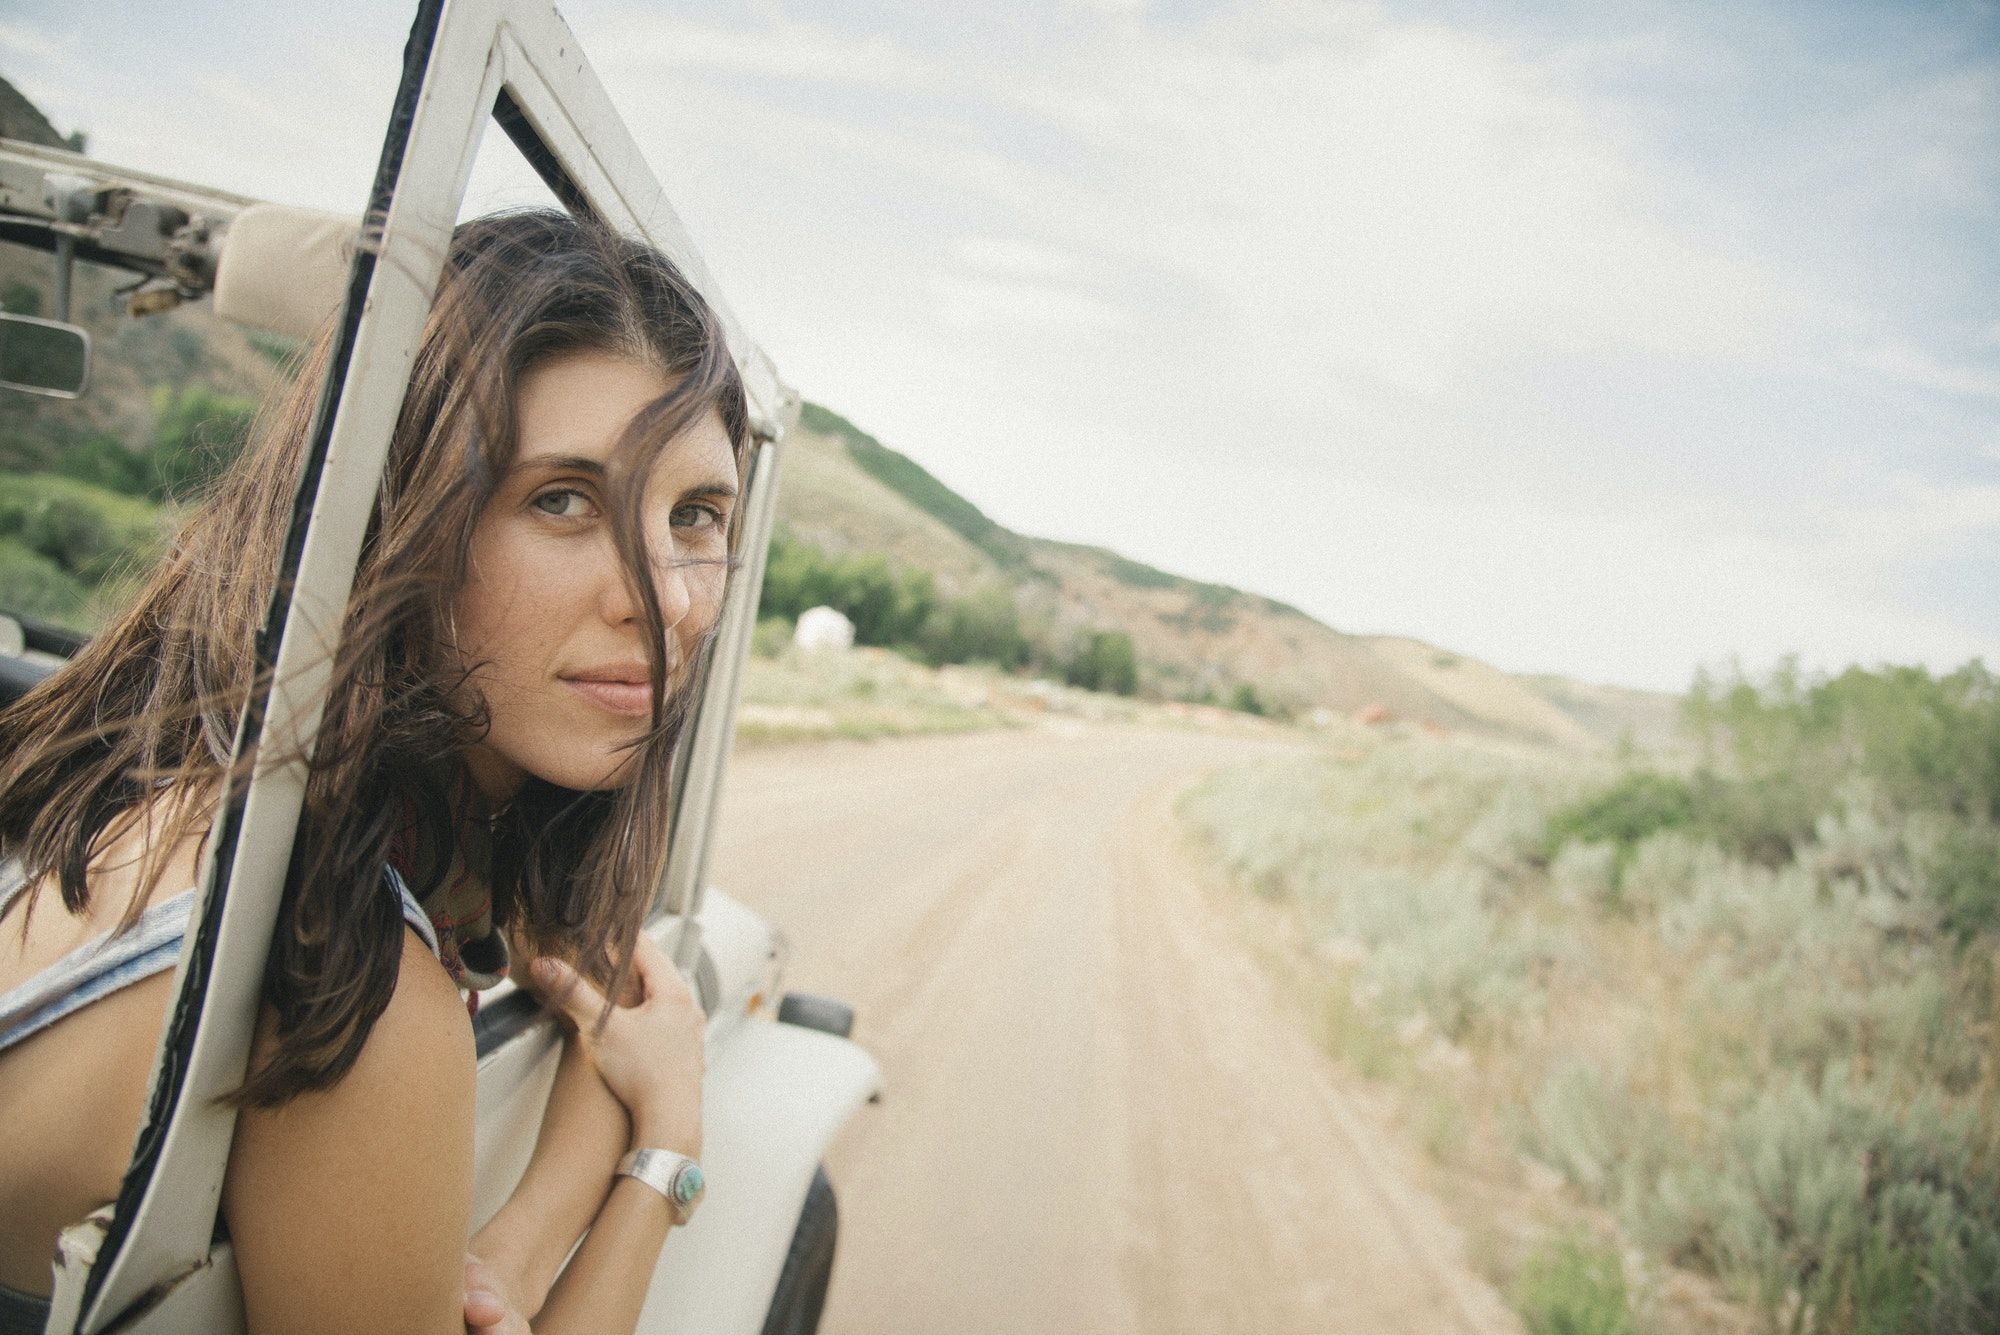 A woman leaning out of a moving jeep on a mountain road.